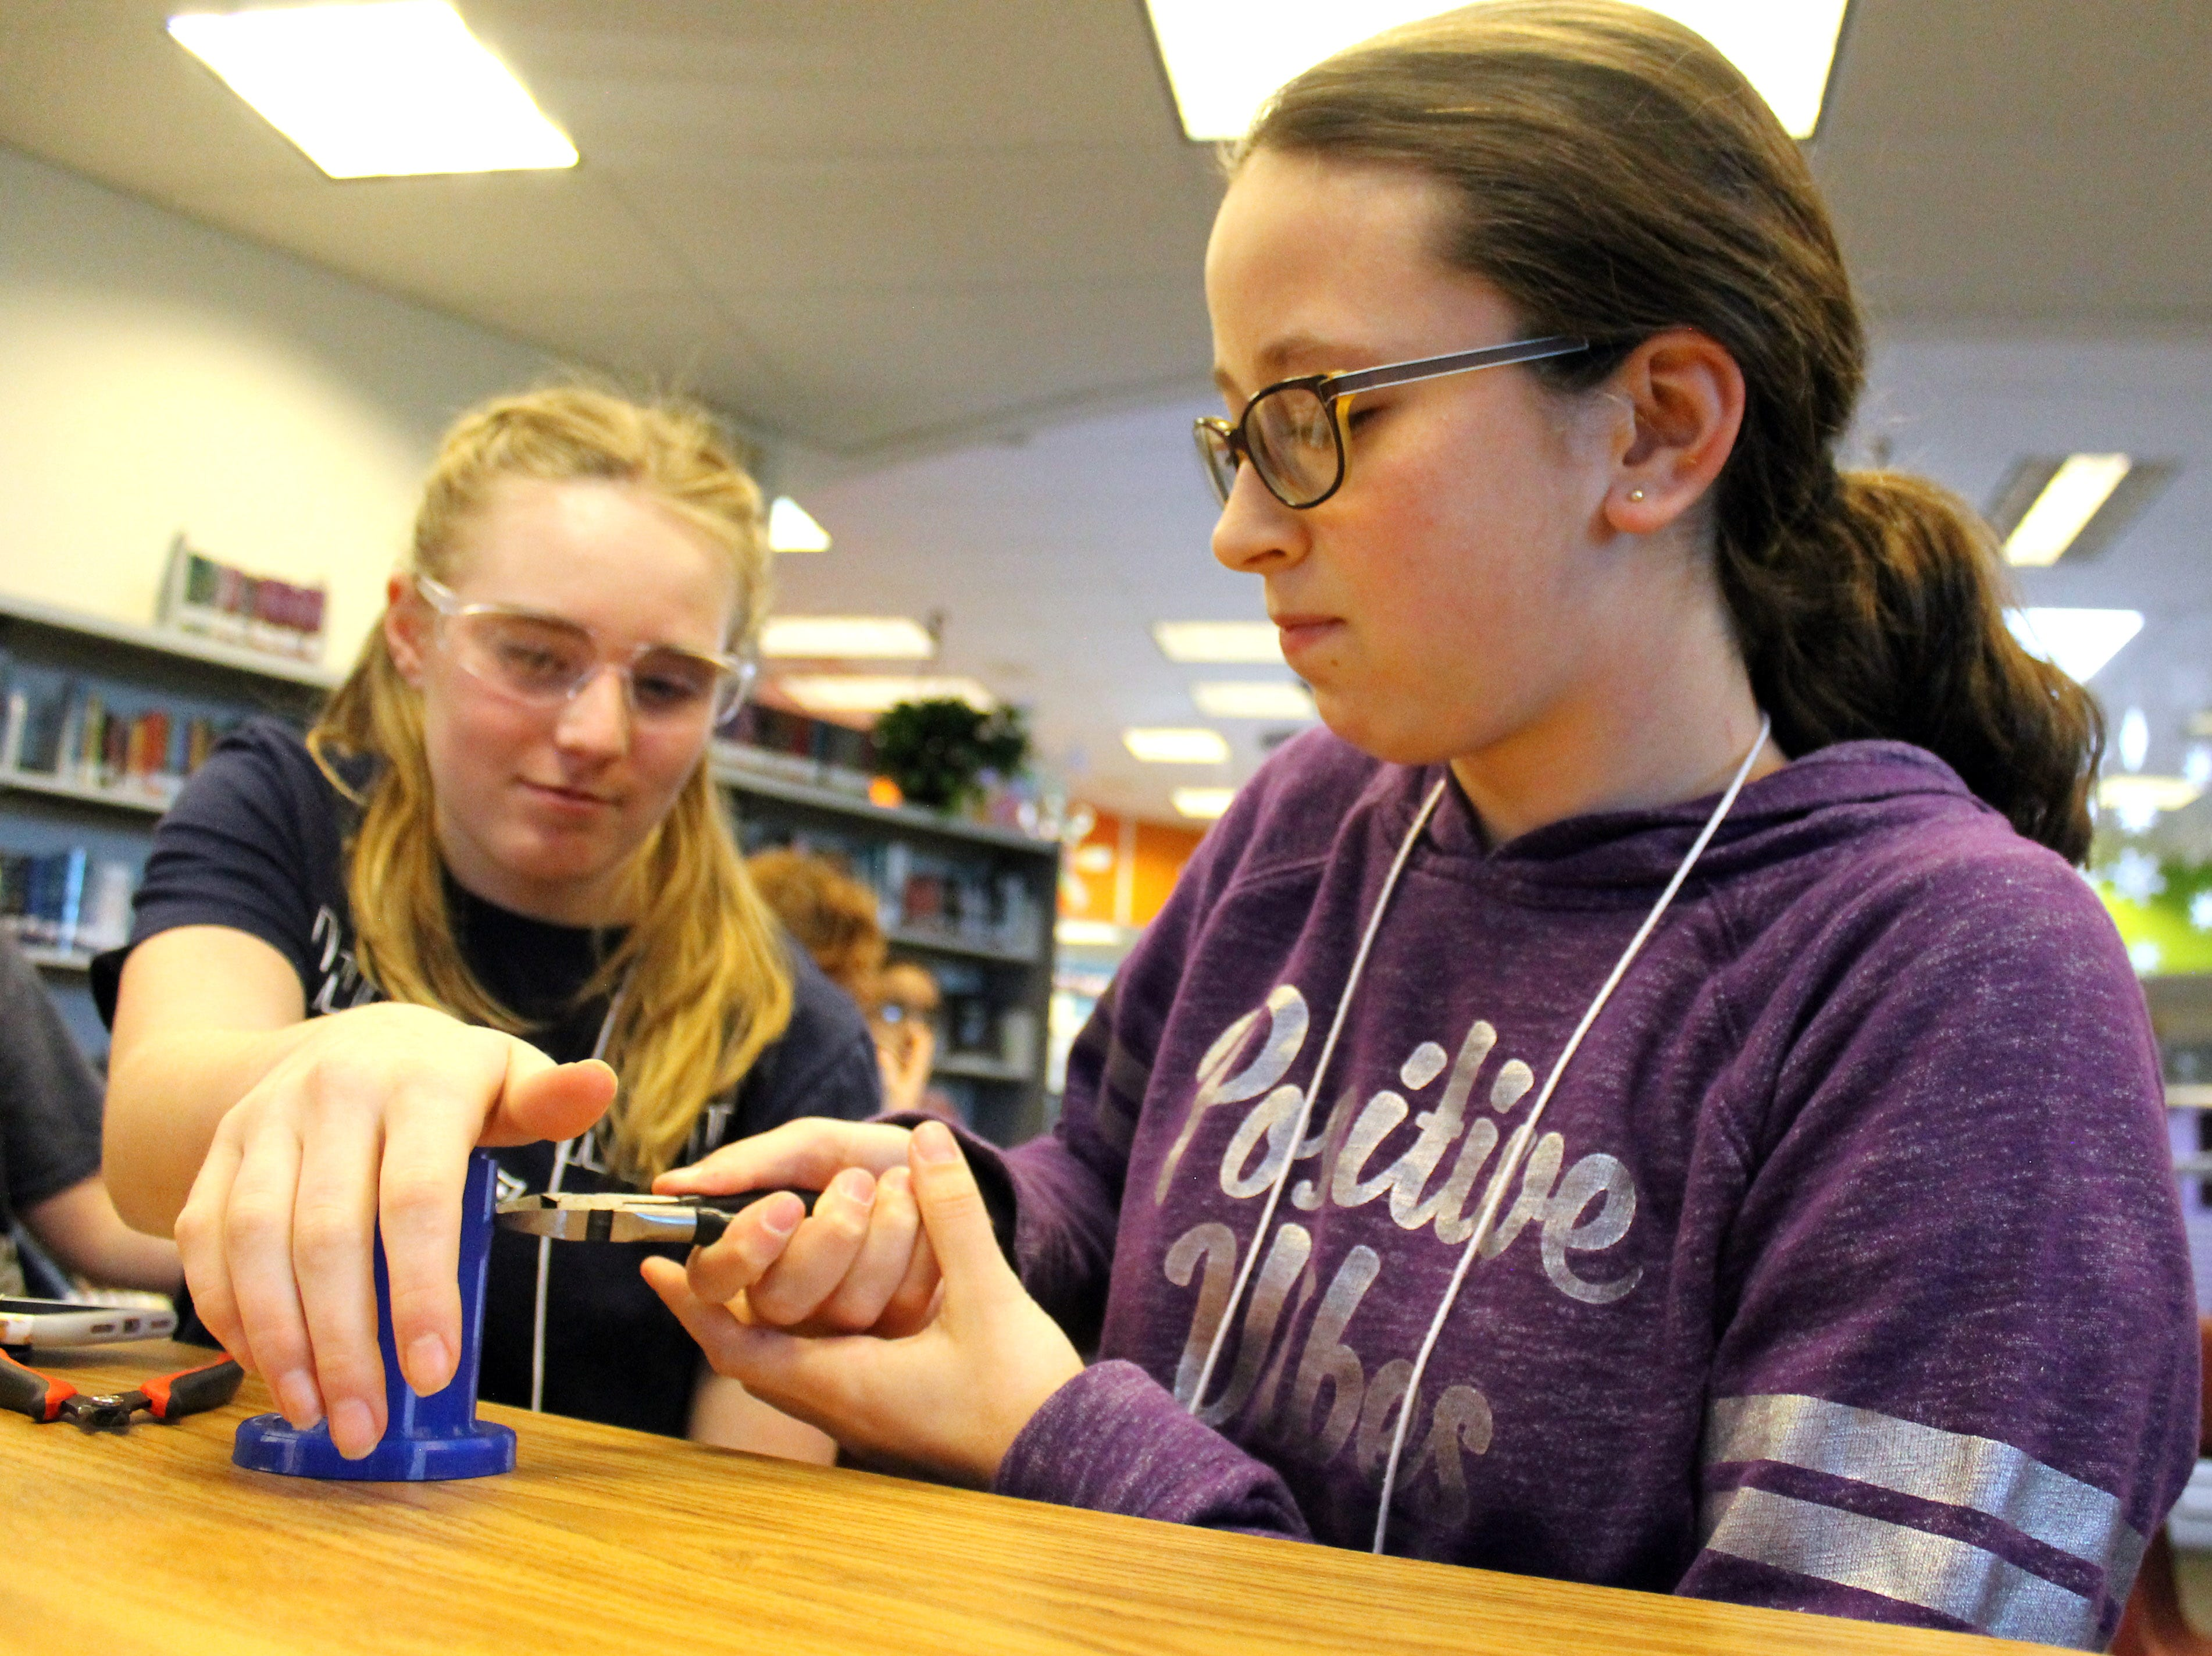 Bronte Wayne, left, and Kylie Perez work together to set up a lantern for Engineering Brightness Feb. 4, 2019 at Preston Middle School. The group works to engineer 3D printed, sustainable lanterns and distributes  them to people without reliable electricity worldwide.